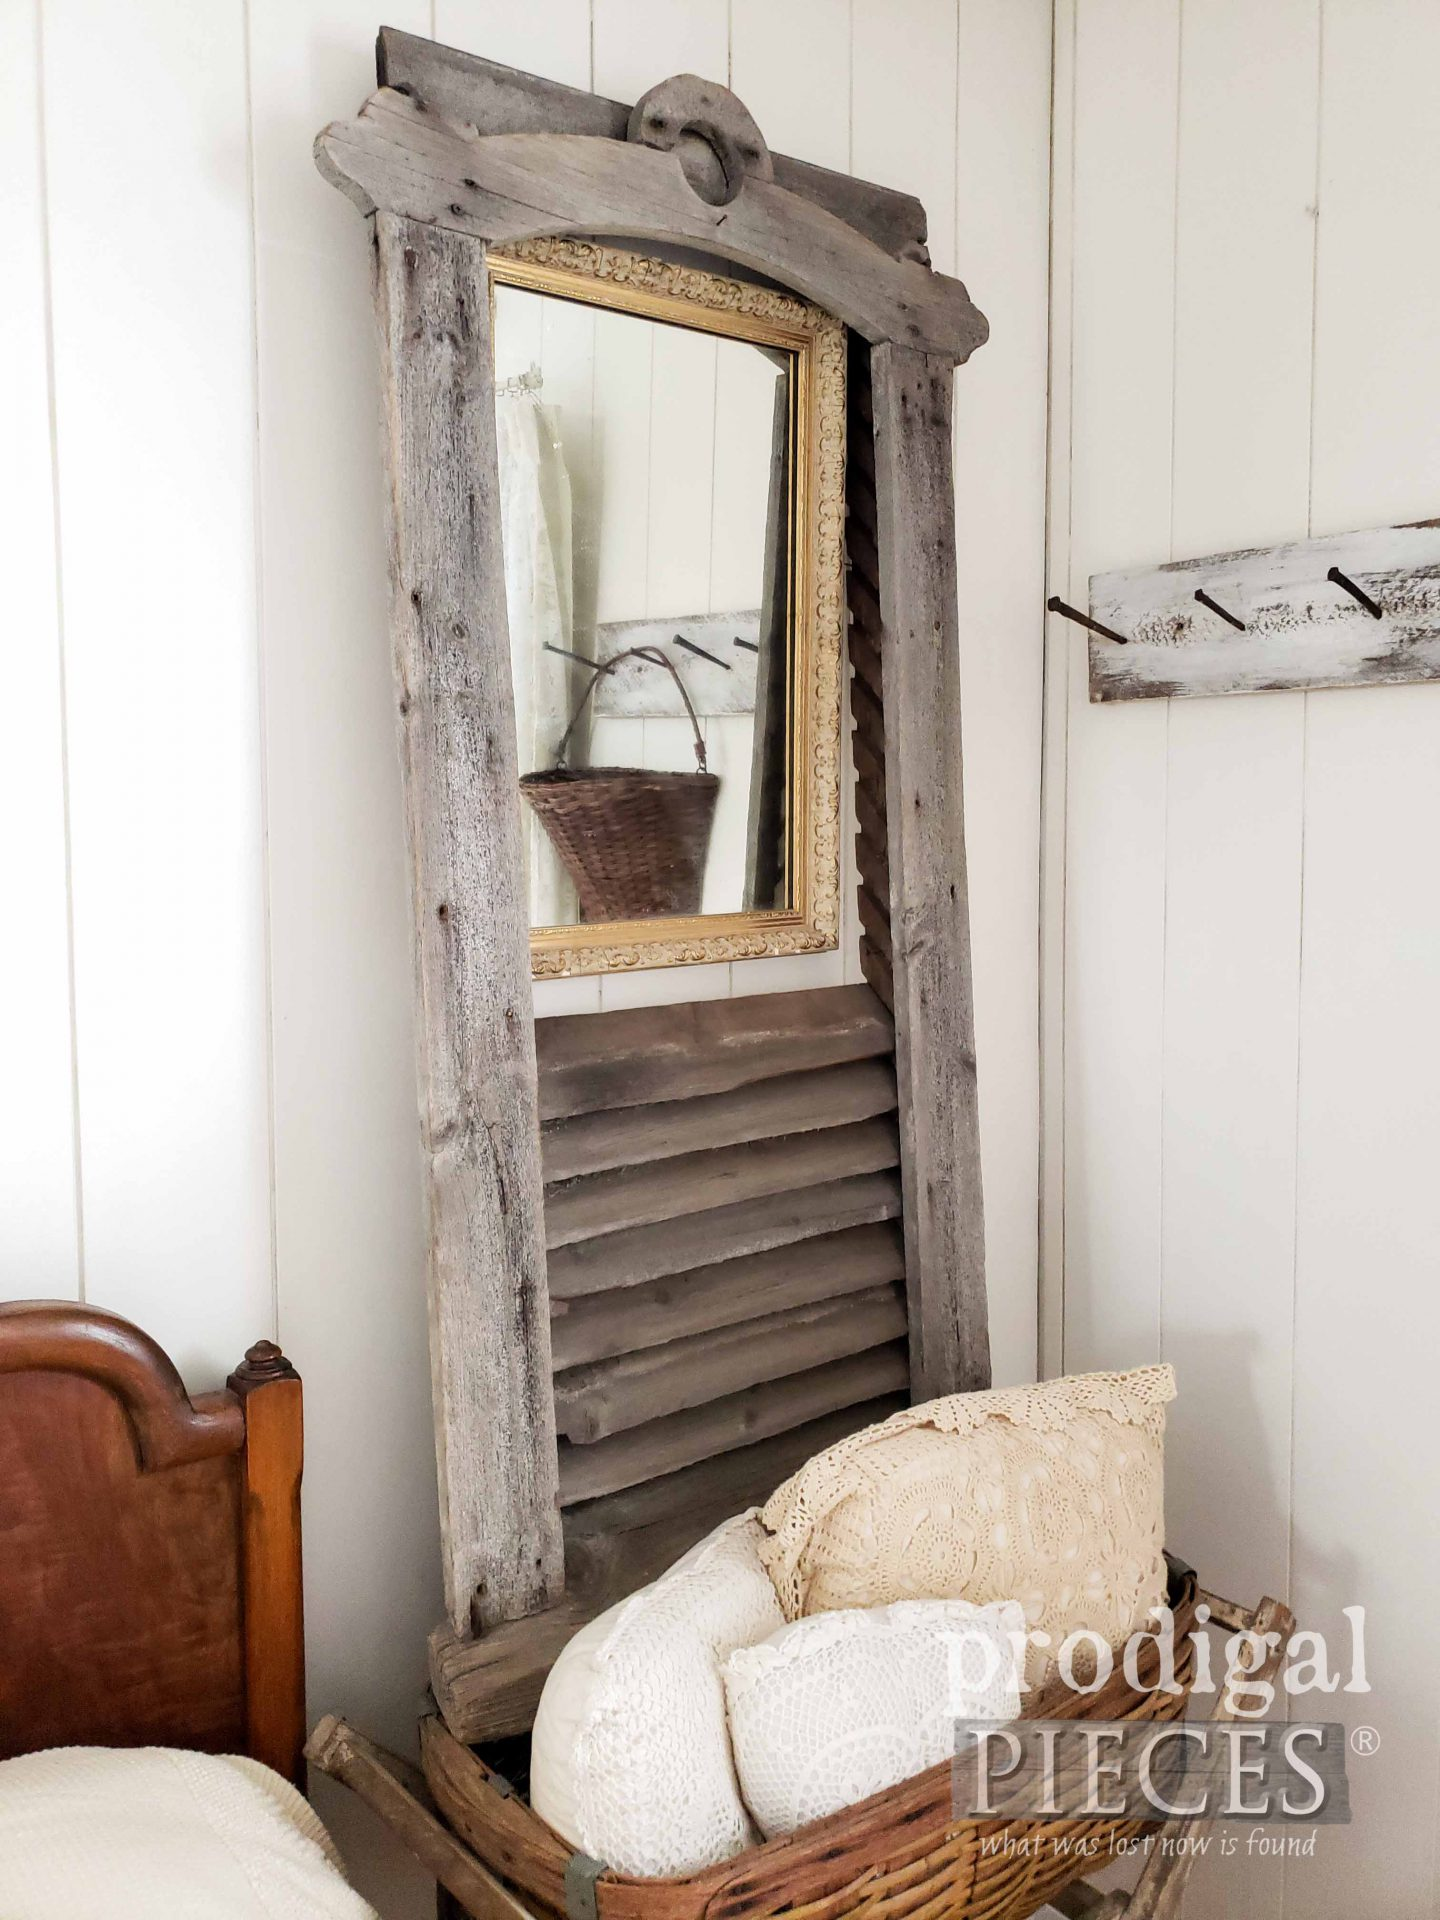 Architectural Salvage Antique Barn Vent Mirror by Larissa of Prodigal Pieces | prodigalpieces.com #prodigalpieces #home #farmhouse #homedecor #architectural